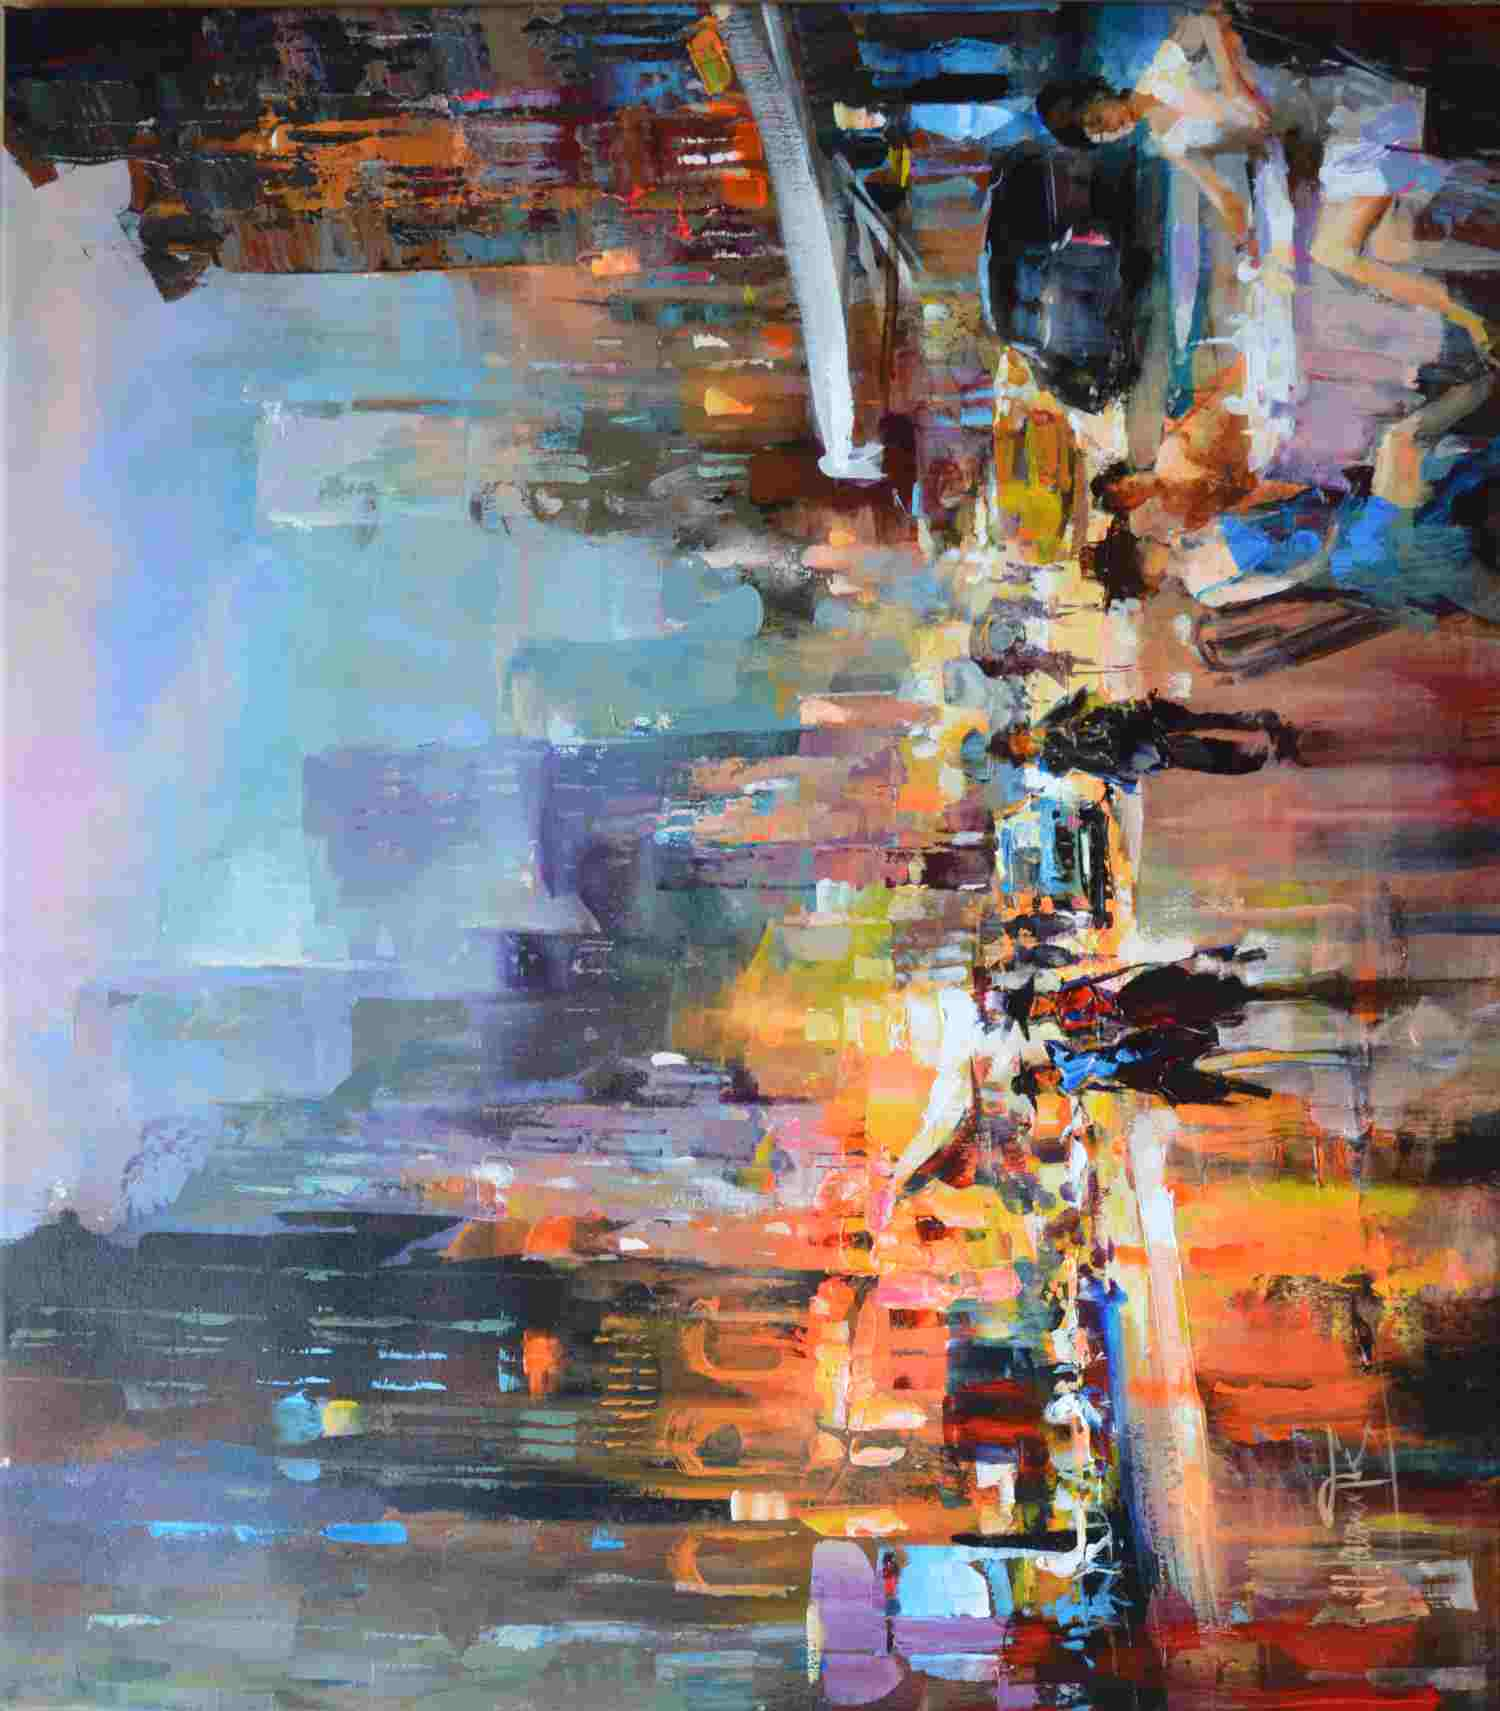 Evening in the City von Haenraets Willem80 x 70cm